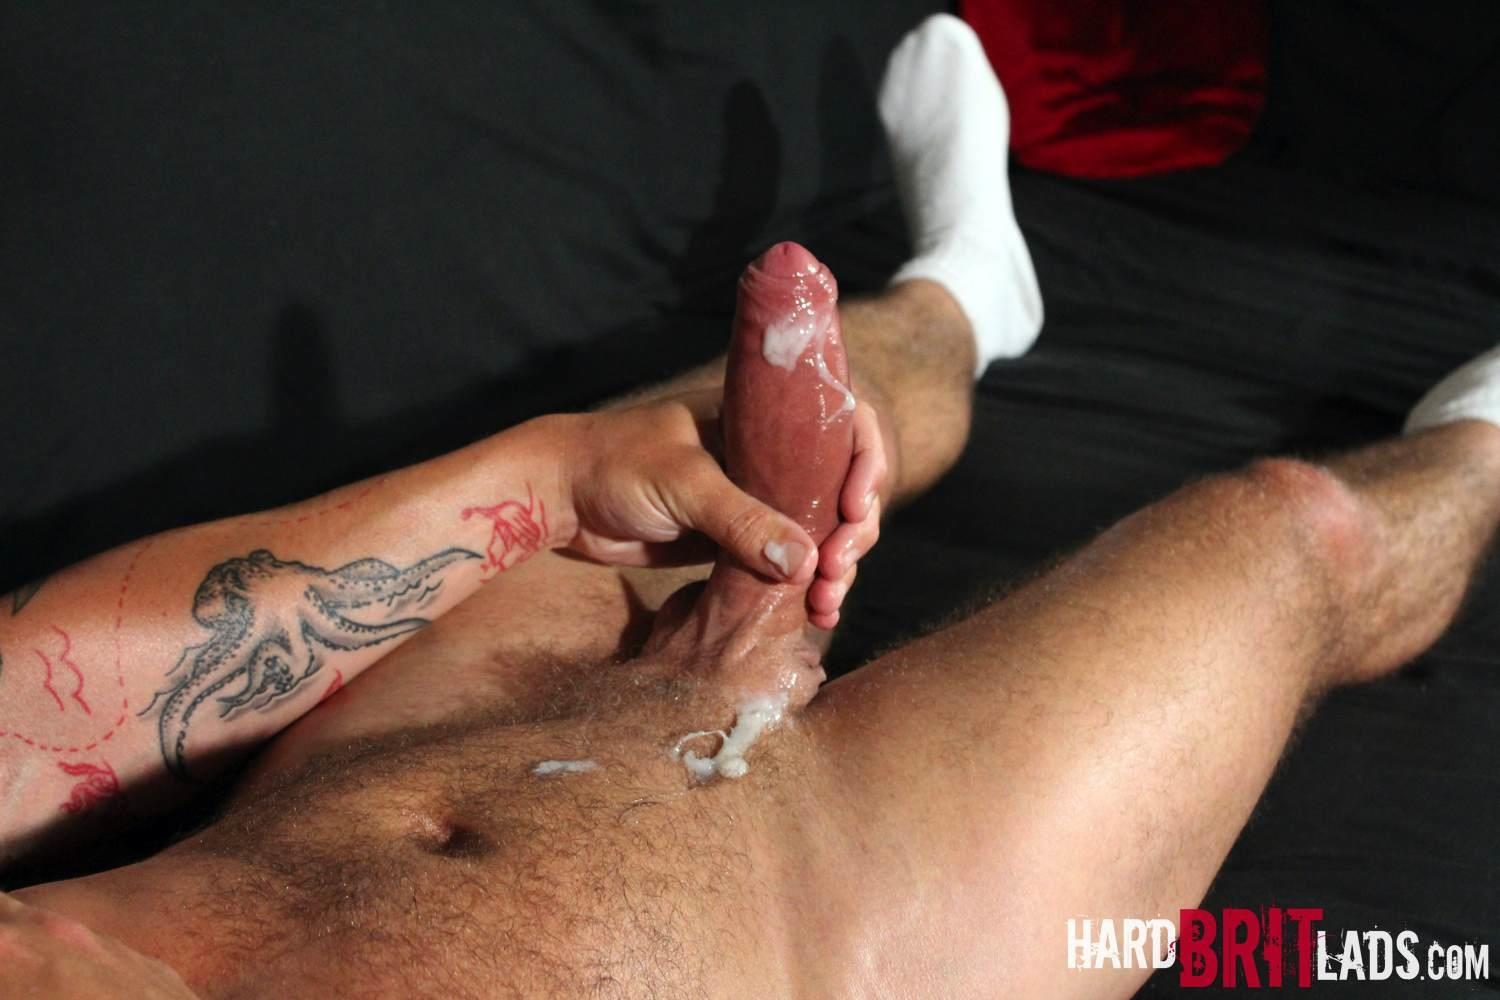 Hard-Brit-Lads-Sam-Porter-British-Muscle-Hunk-With-A-big-Uncut-cock-Amateur-Gay-Porn-24 Tatted Muscle British Hunk Sam Porter Jerking His Big Uncut Cock